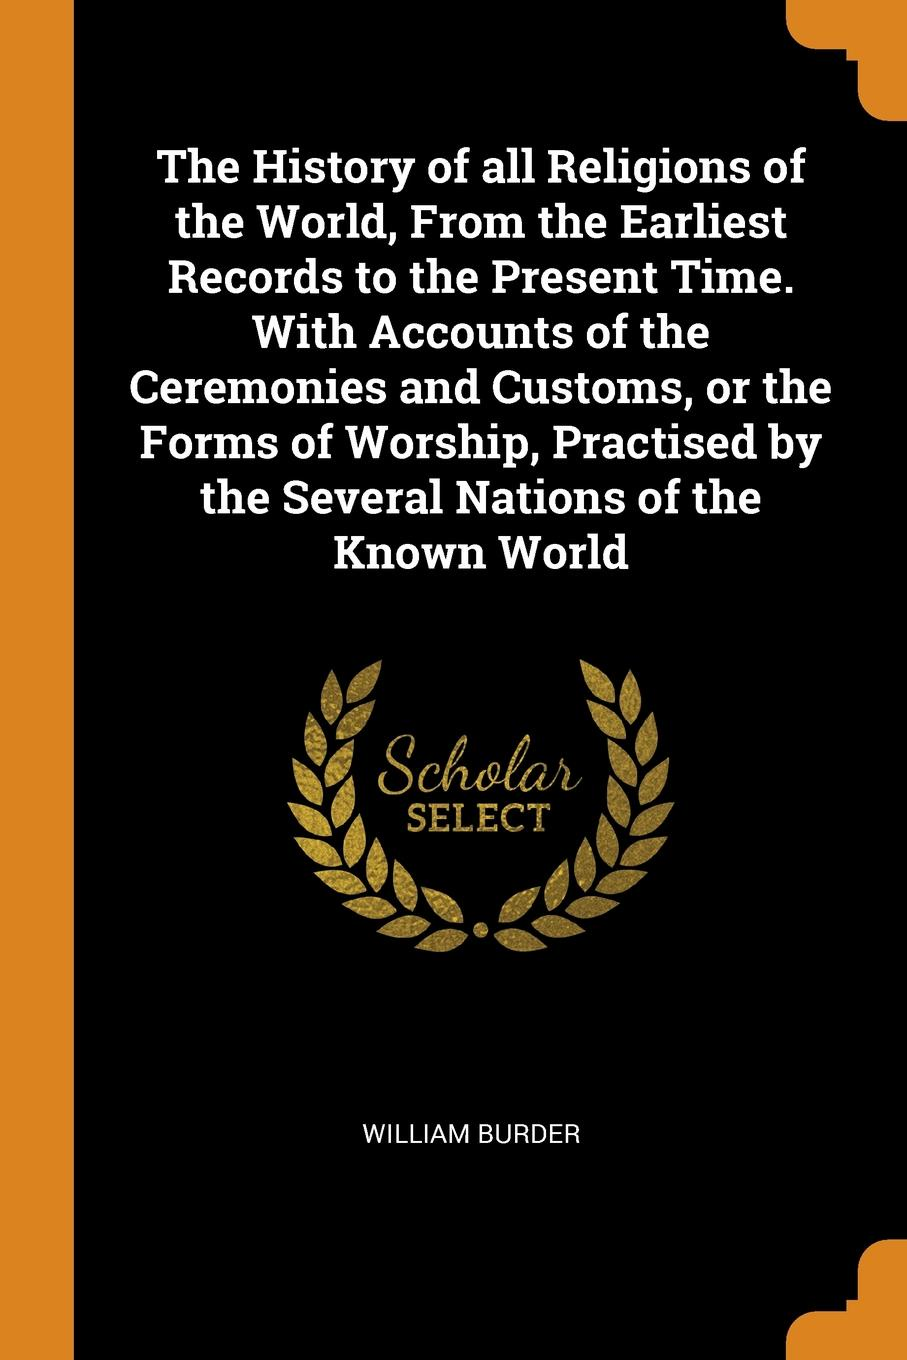 William Burder The History of all Religions of the World, From the Earliest Records to the Present Time. With Accounts of the Ceremonies and Customs, or the Forms of Worship, Practised by the Several Nations of the Known World william abbatt a history of the united states and its people from their earliest records to the present time volume 6